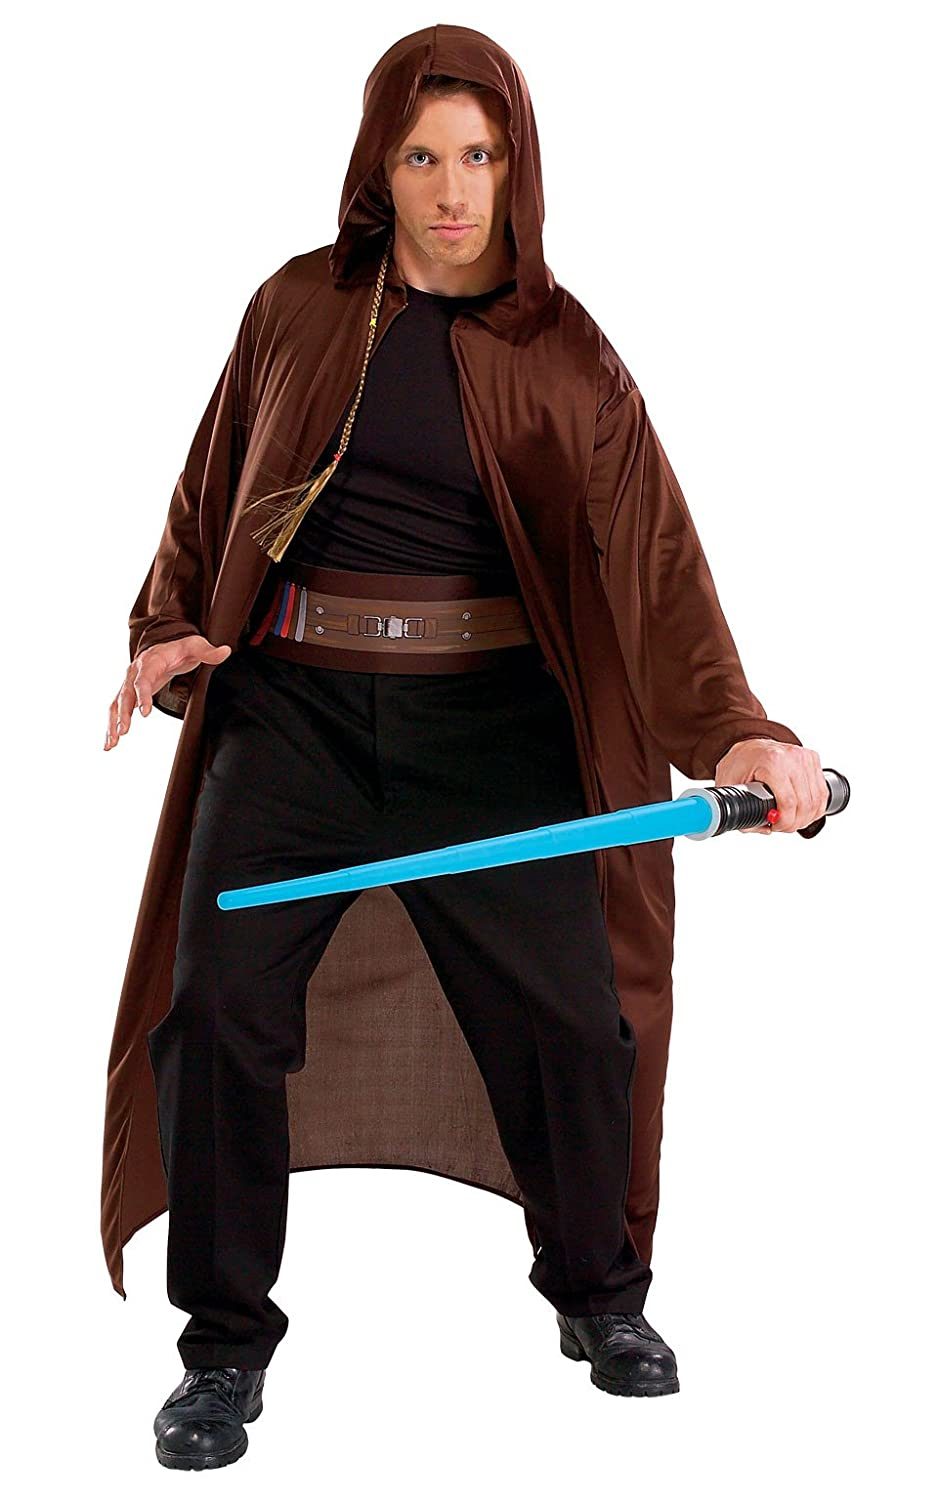 596ba0e4b8 Amazon.com: Rubie's Men's Star Wars Adult Jedi Kit, Multicolor, One Size:  Clothing